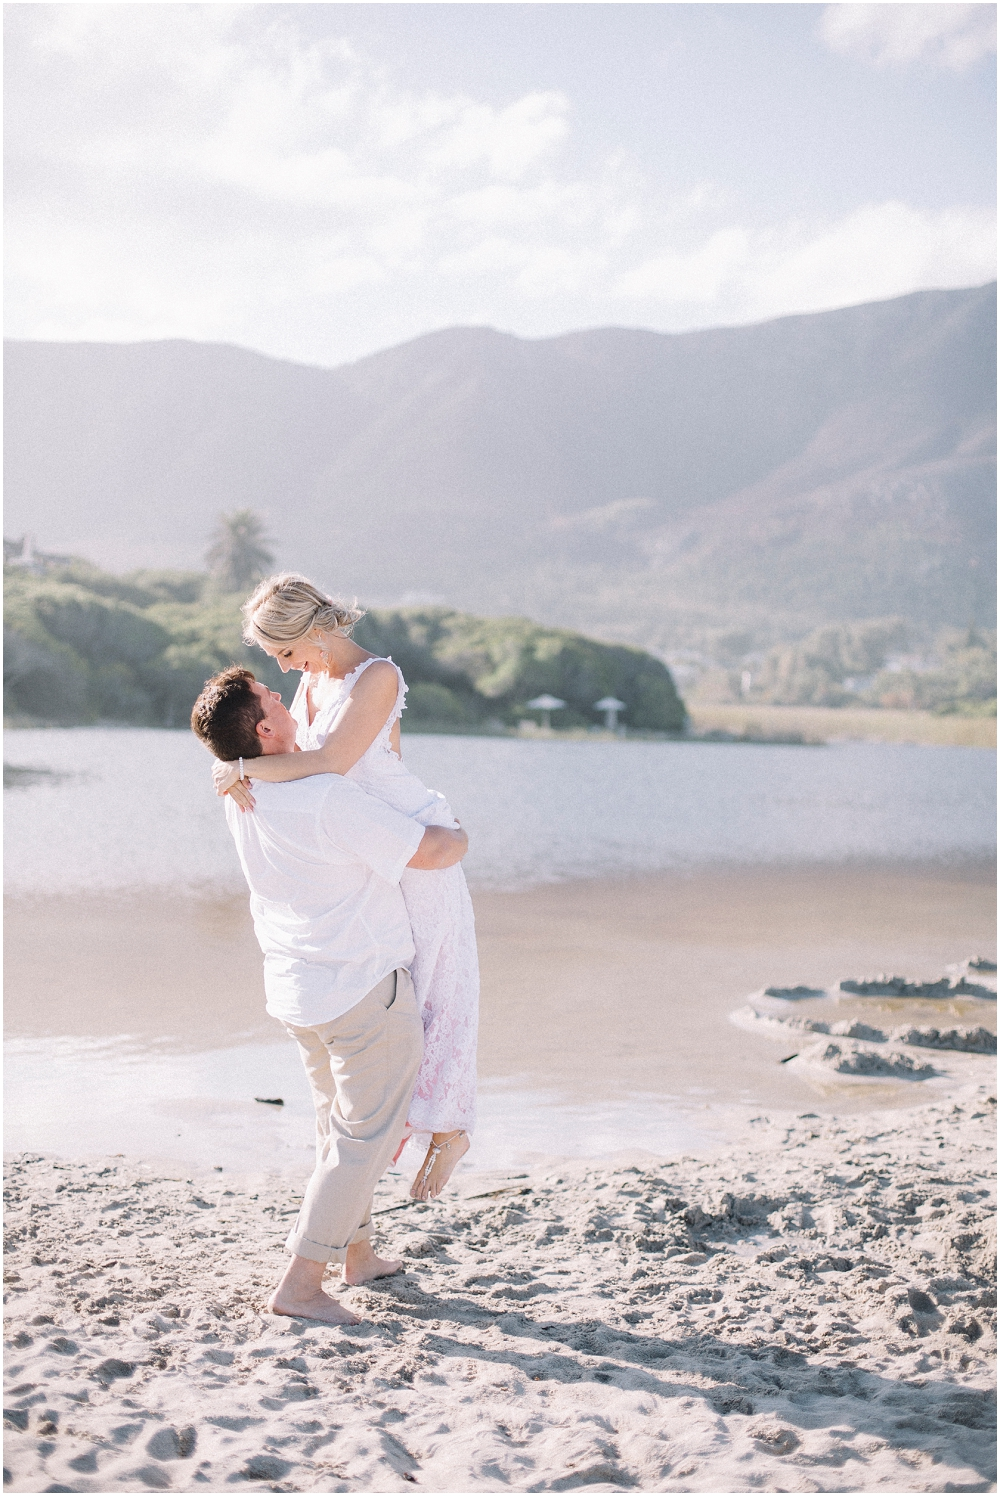 Western Cape Wedding Photographer Ronel Kruger Photography Cape Town_4043.jpg